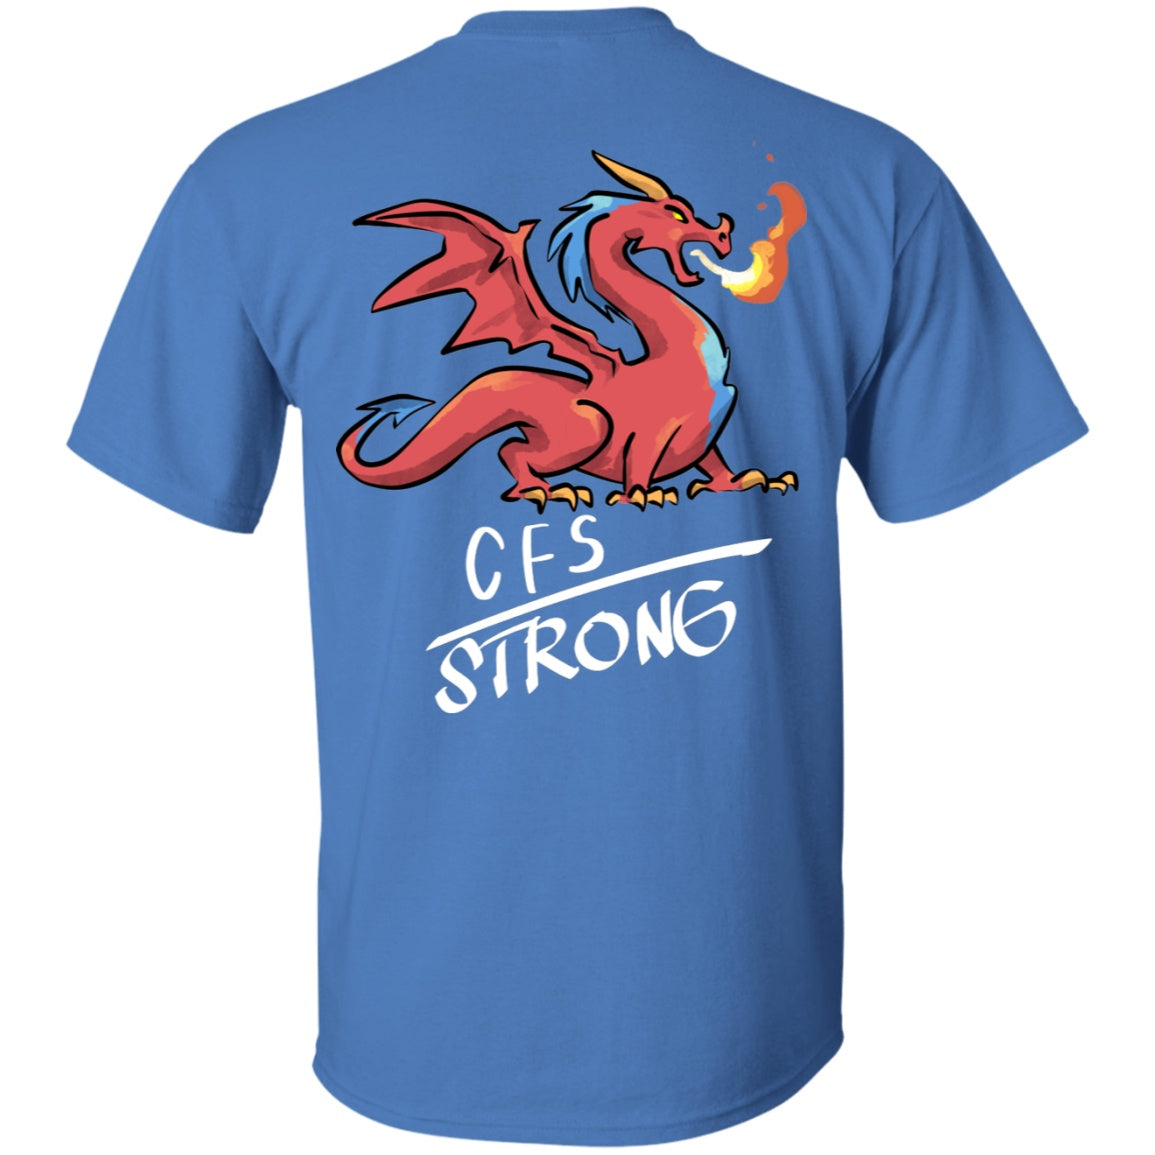 CFS Strong Dragon Unisex T-Shirt - The Unchargeables